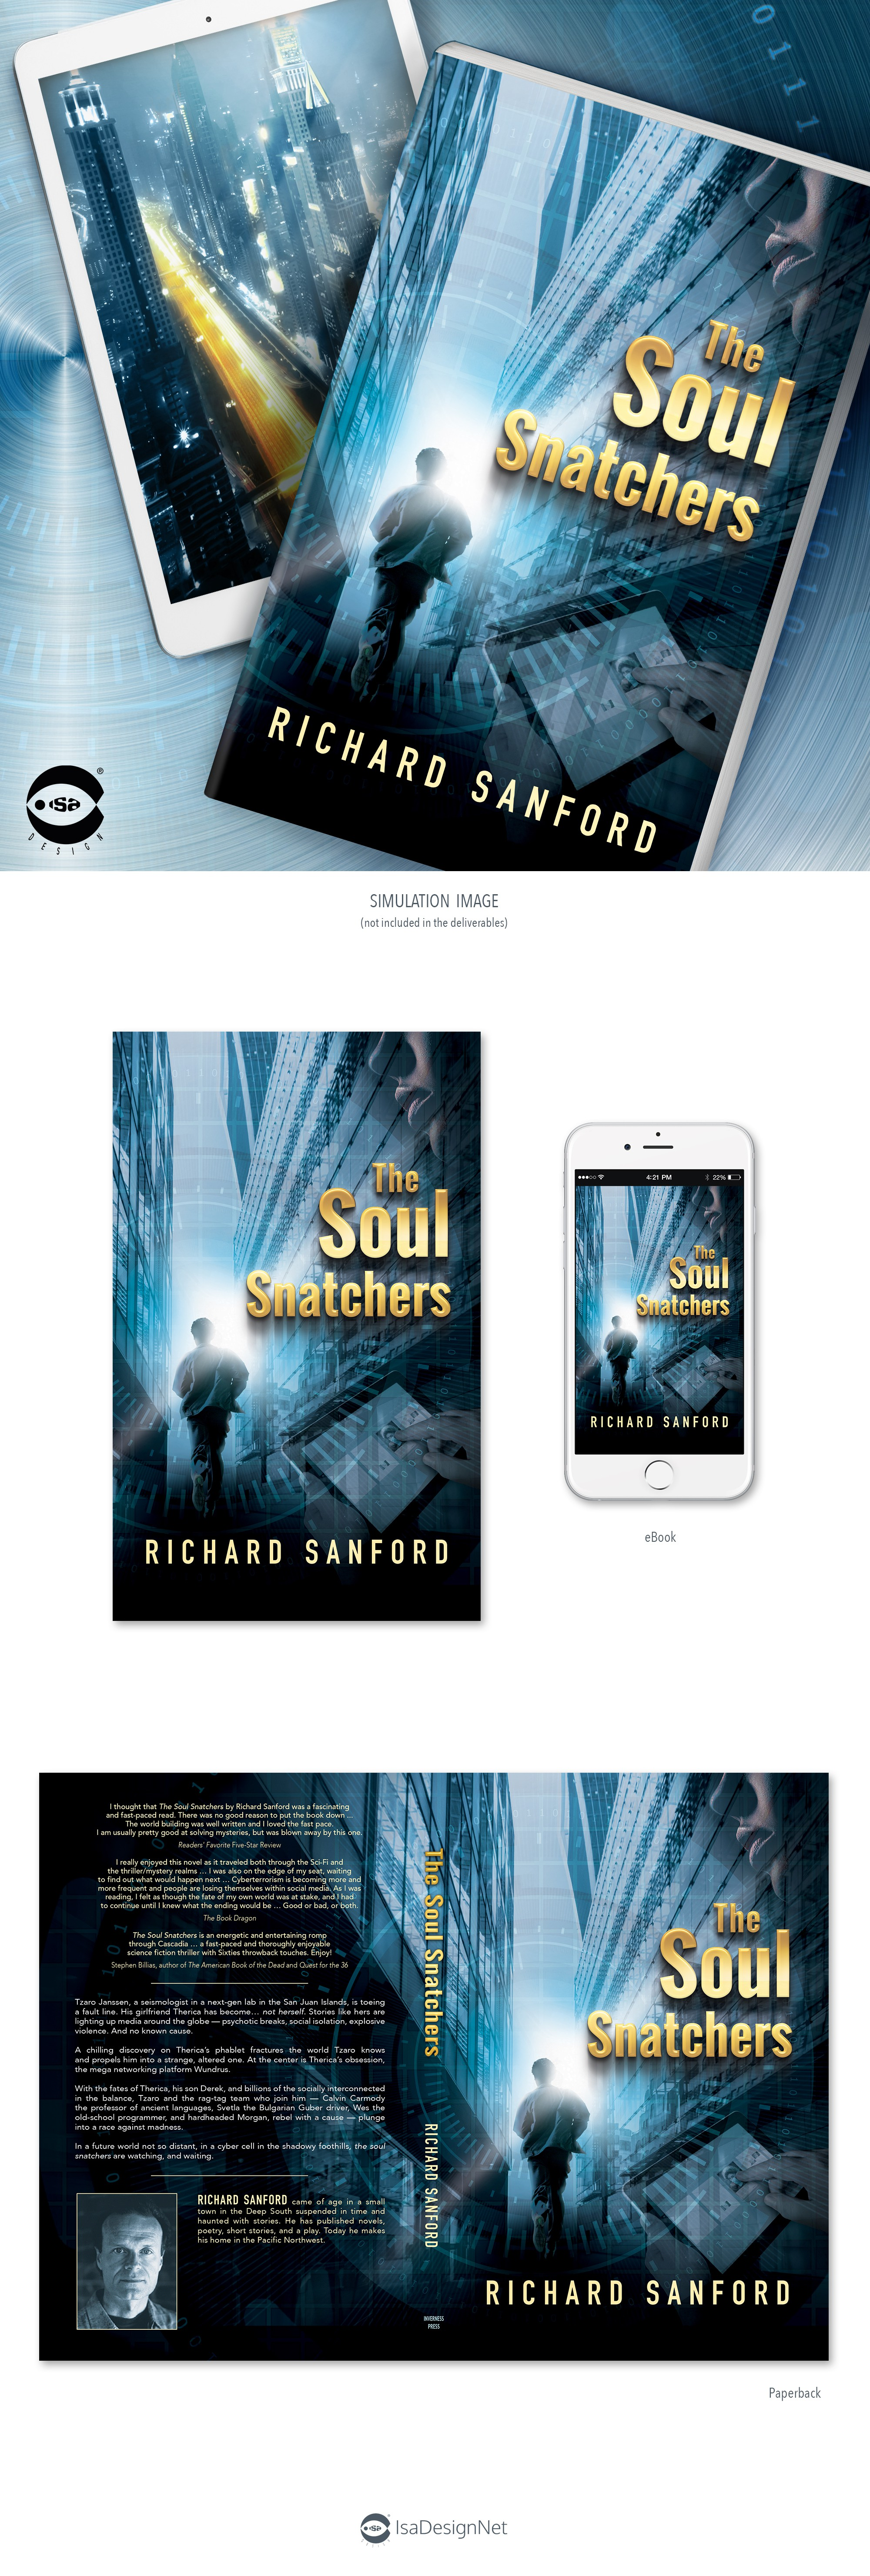 Book cover: The Soul Snatchers